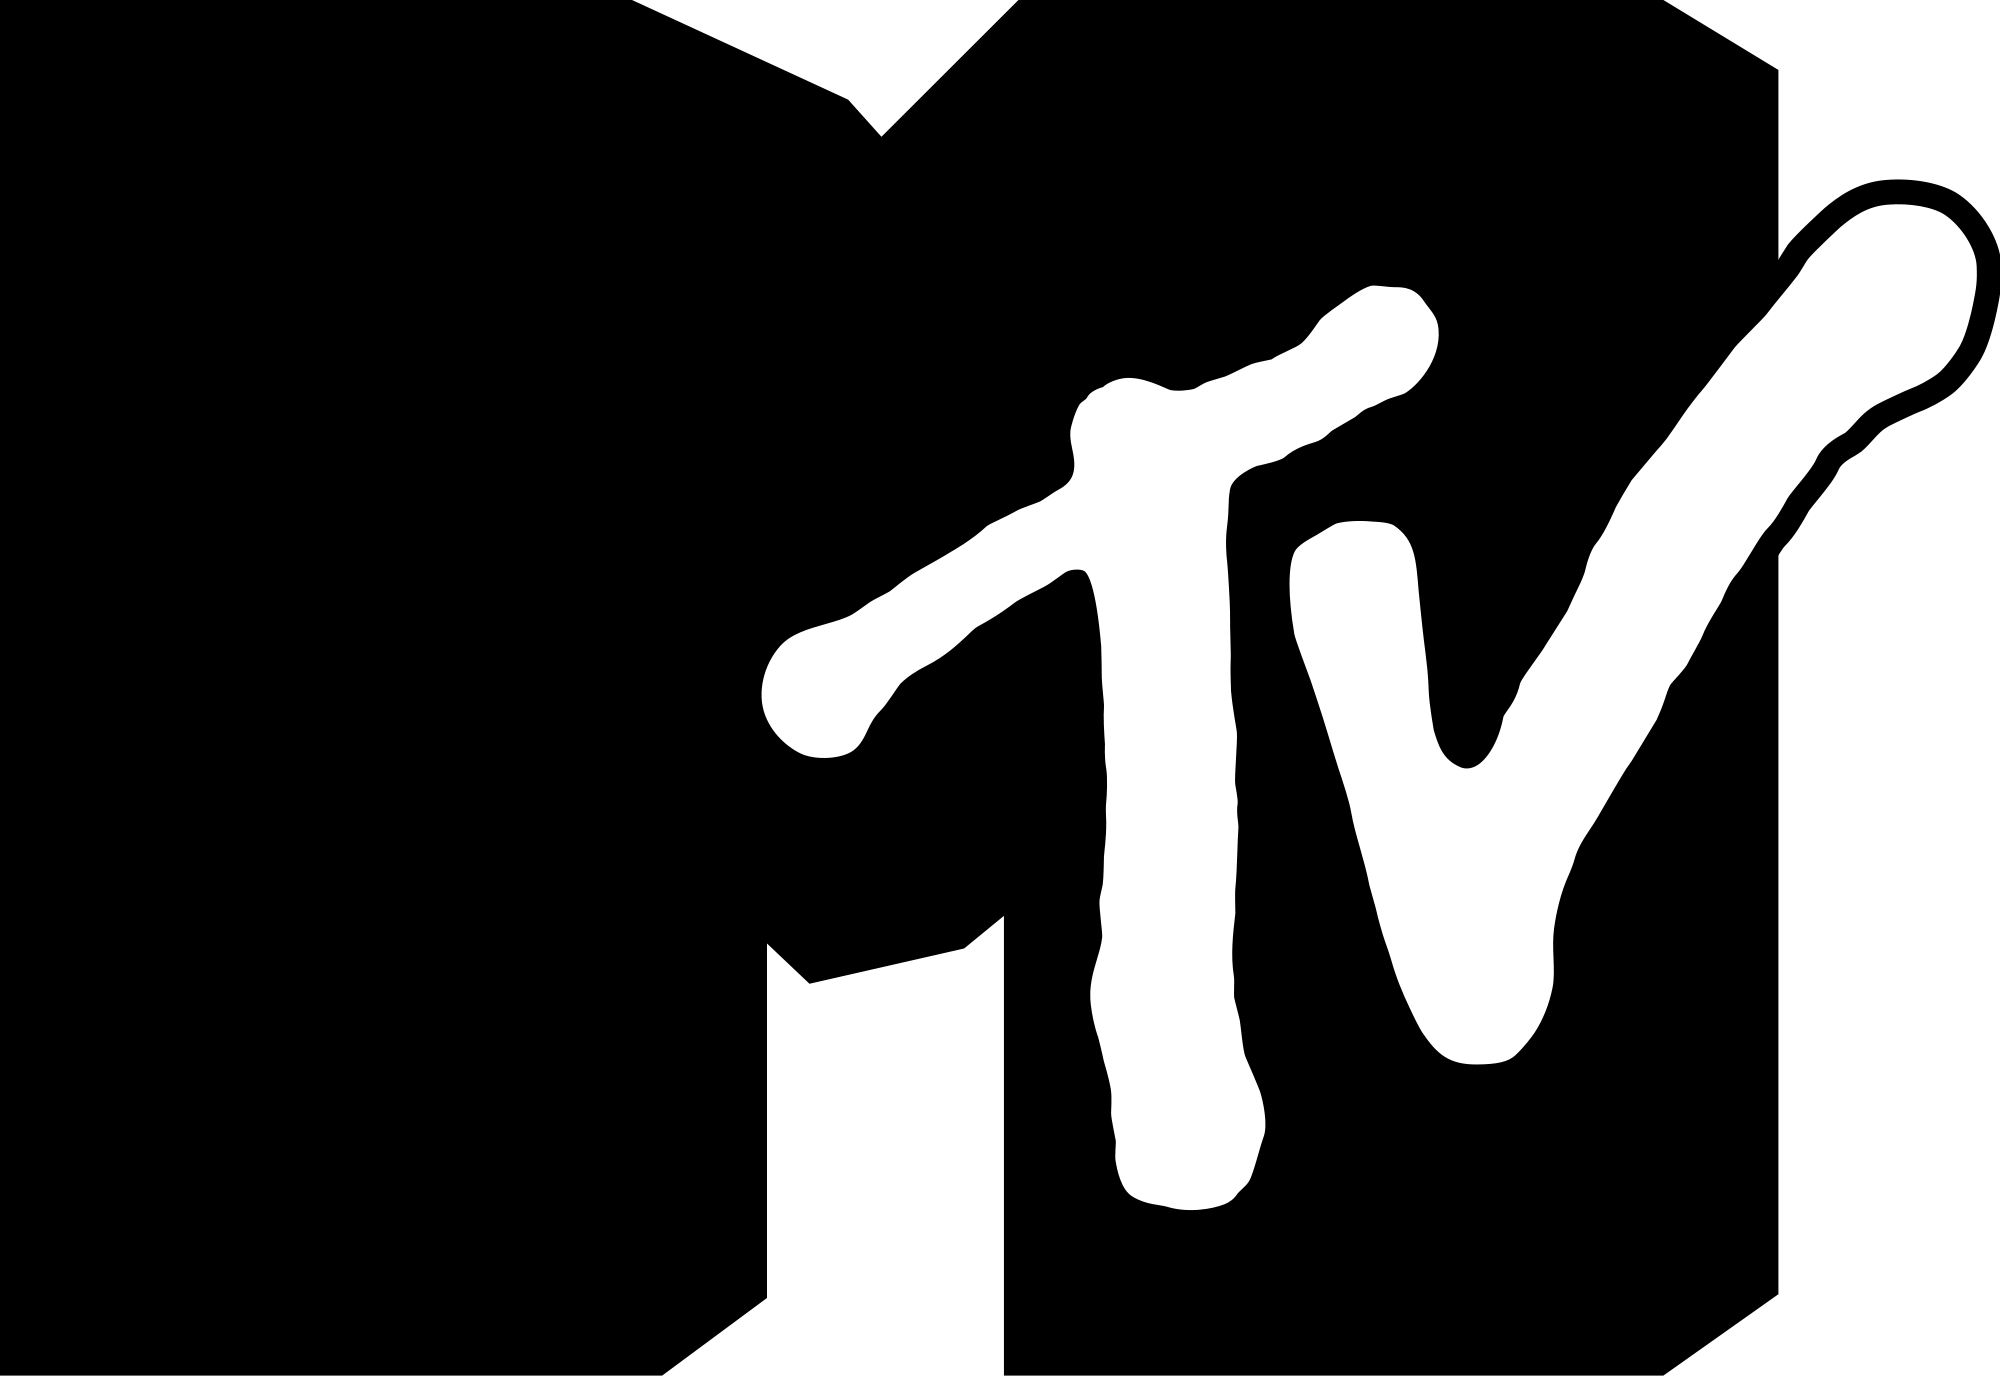 File:LOGO MTV BRASIL.png - Wikimedia Commons